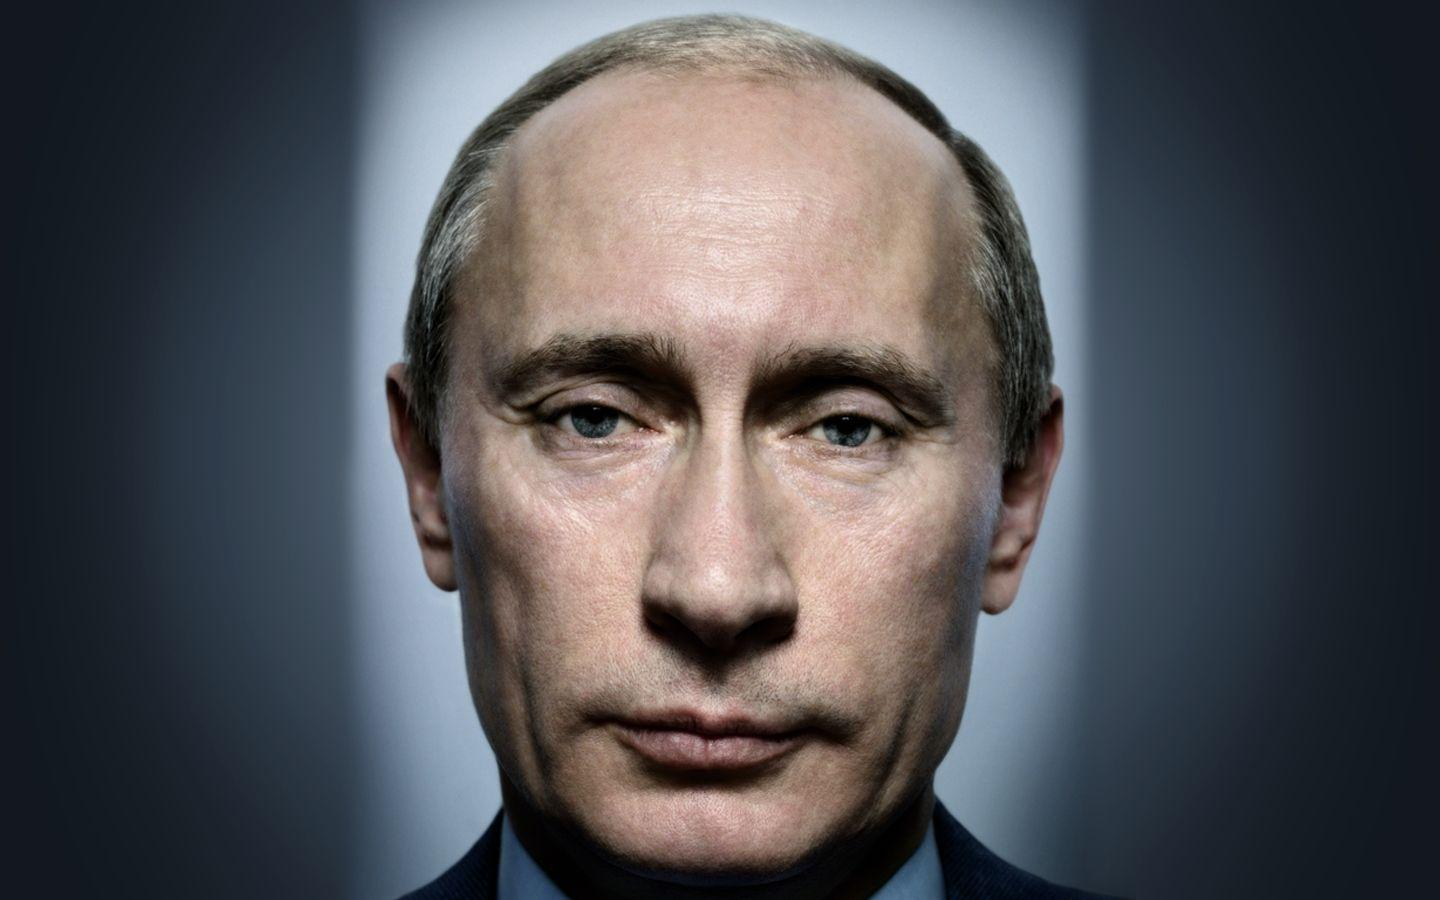 Russia, presidents, Vladimir Putin, politician :: Wallpapers